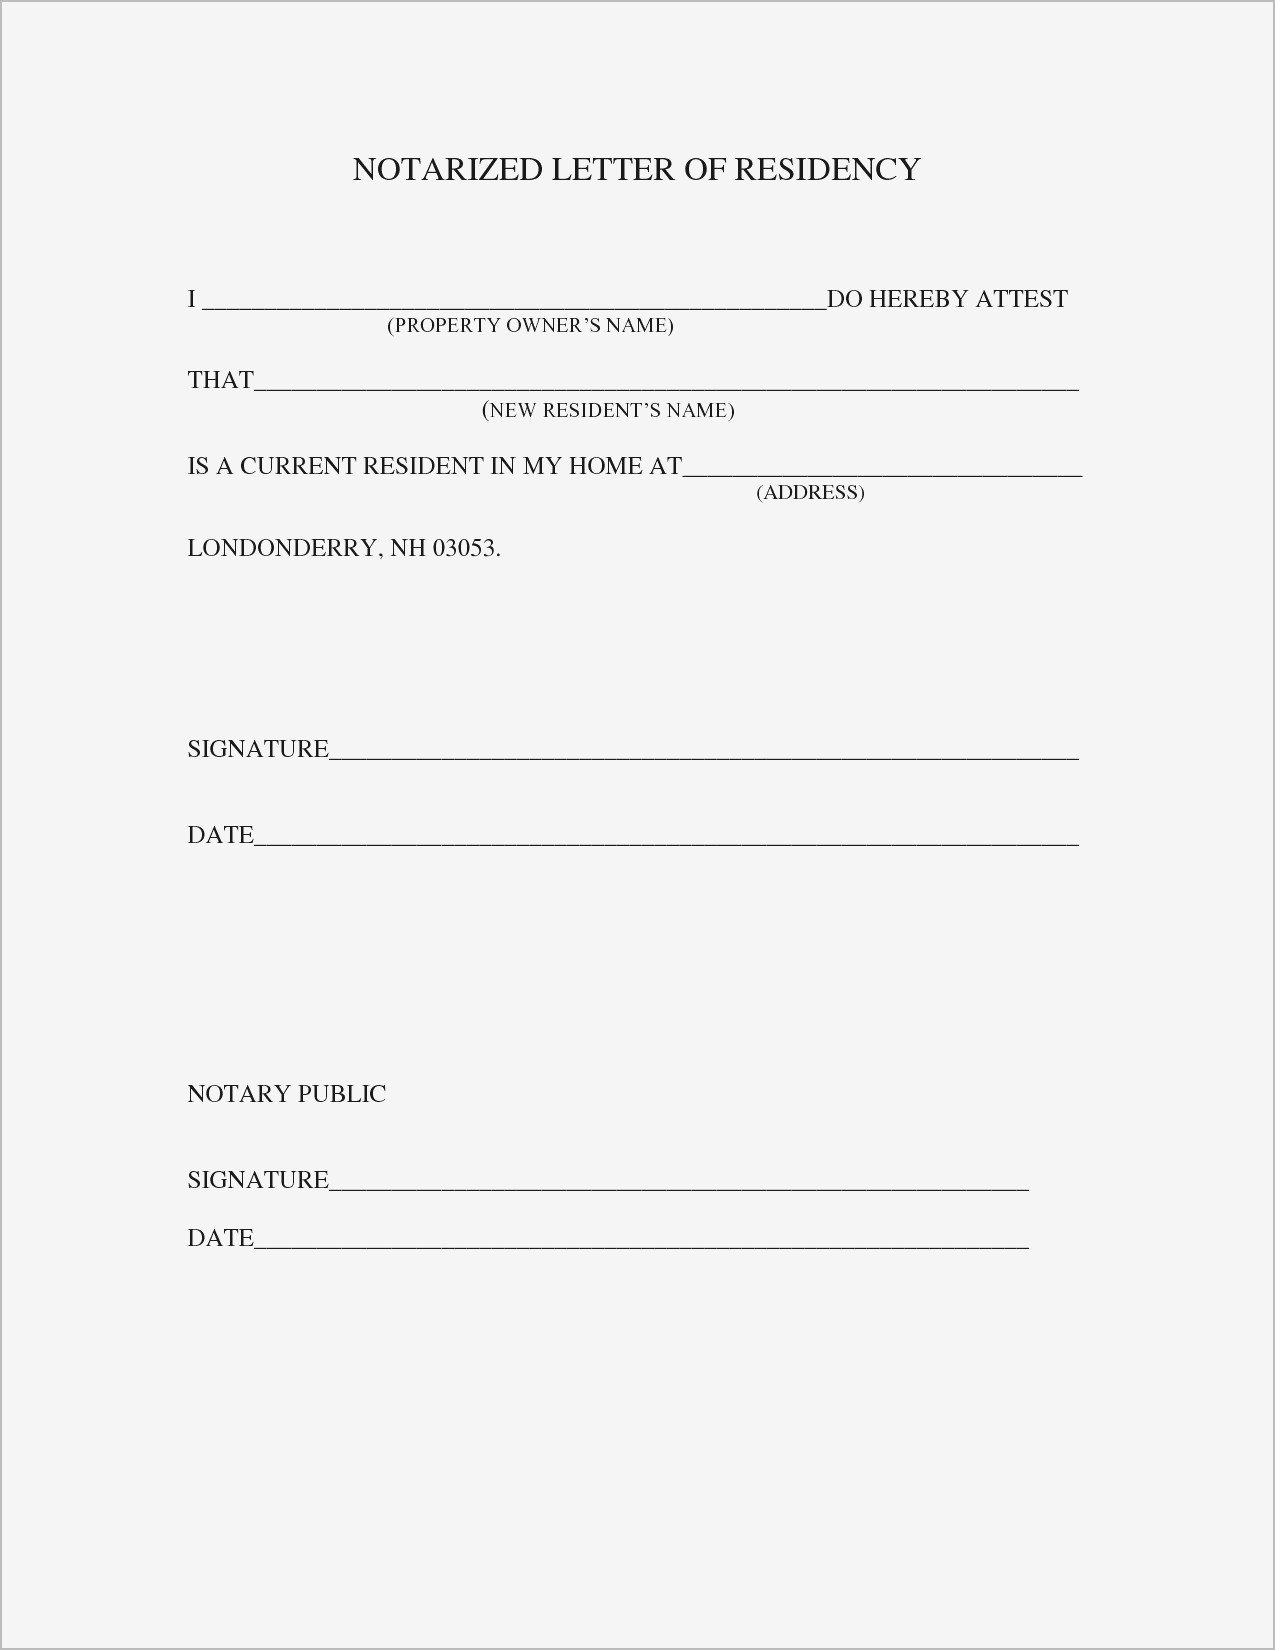 Notarized Letter Of Residency How to Get A Letter Notarized